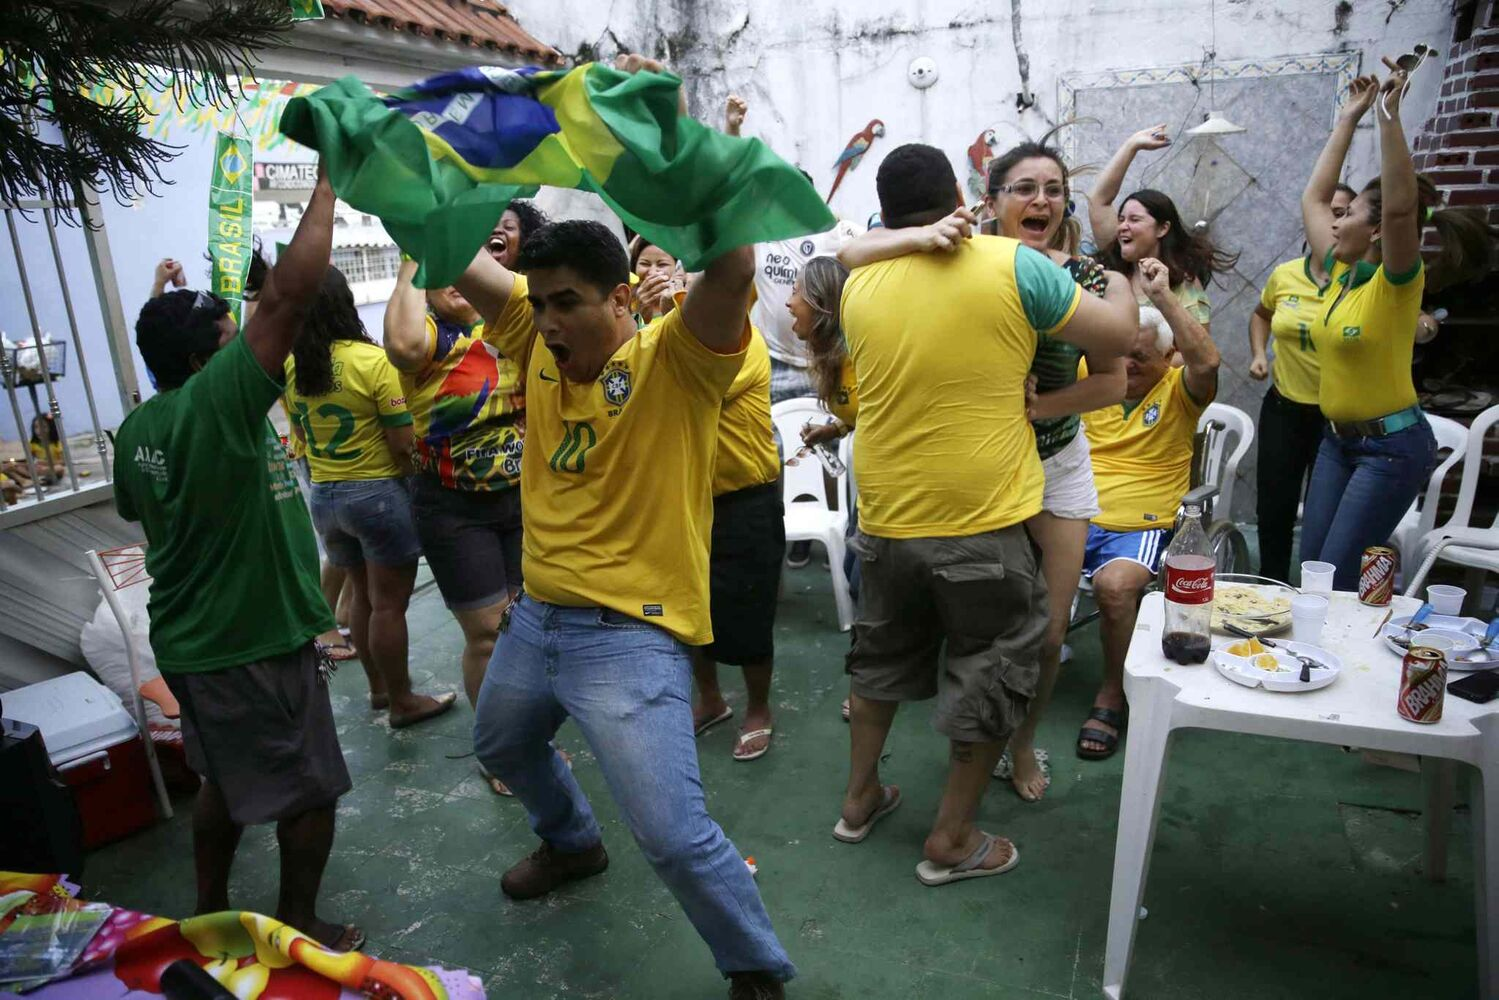 Soccer fans celebrate on the patio of a private residence as they watch a live broadcast of the goal scored by Brazilian midfielder Oscar dos Santos Emboaba Júnior in the World Cup opening match against Croatia, in Manaus, Brazil, Thursday, June 12, 2014. Brazil defeated Croatia 3-1. Oscar scored the third goal.  (Martin Mejia / The Associated Press)